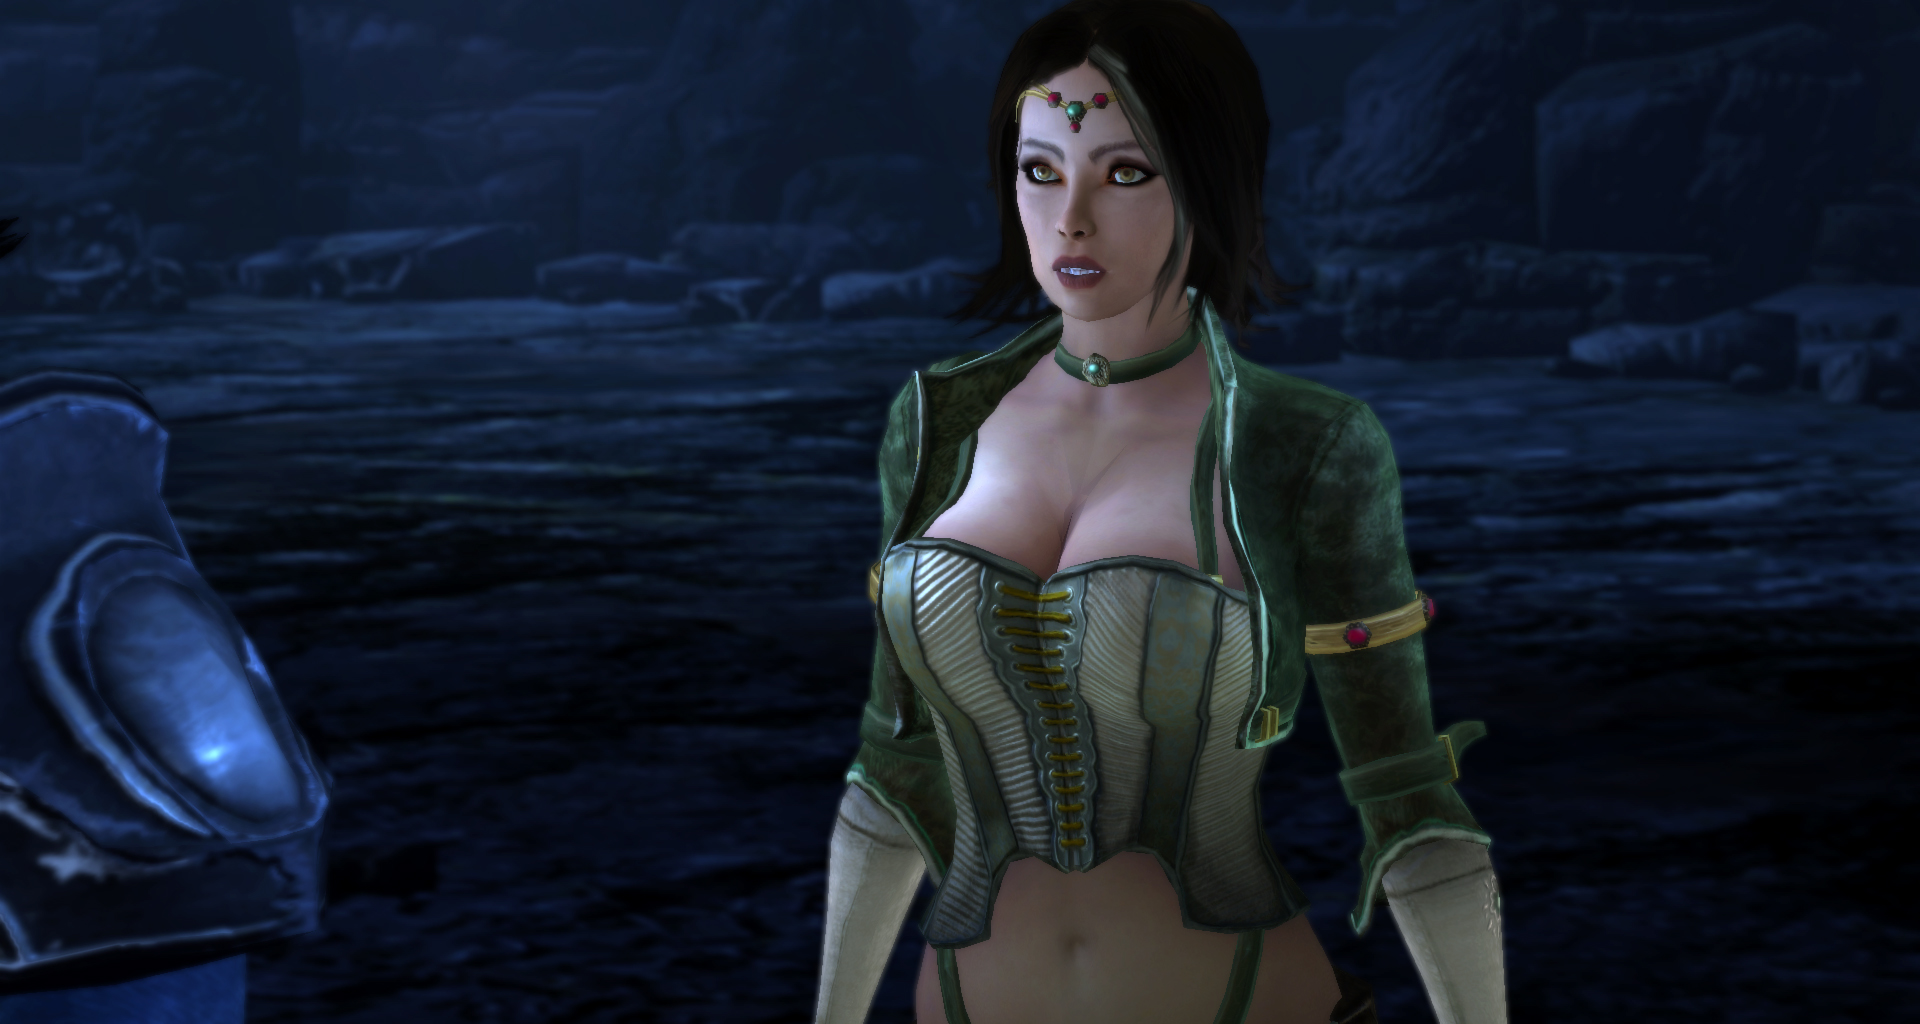 Hentai 3d dungeon siege 3 adult pic